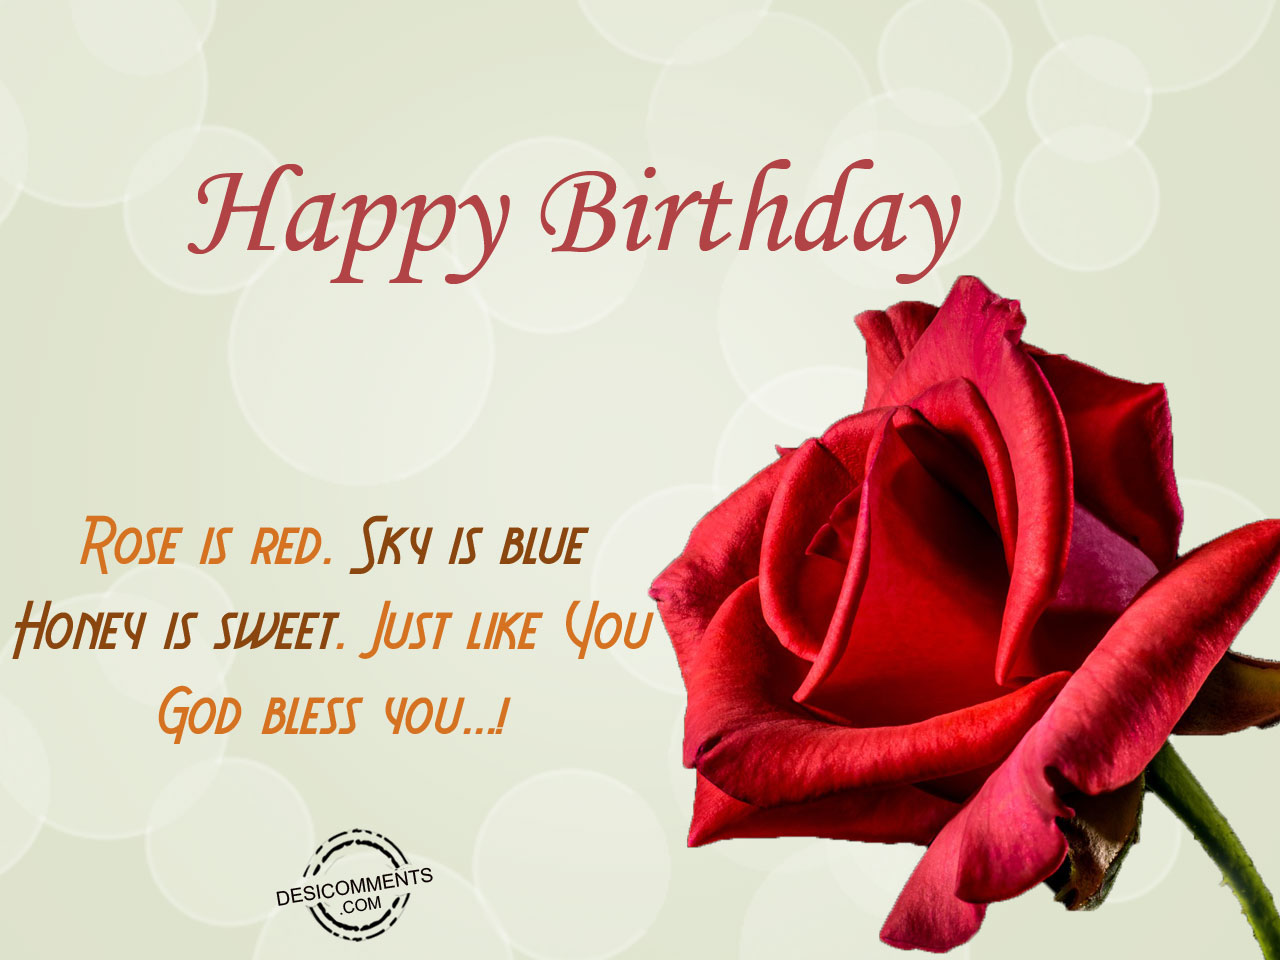 Birthday wishes for husband birthday images pictures rose is red sky is blue m4hsunfo